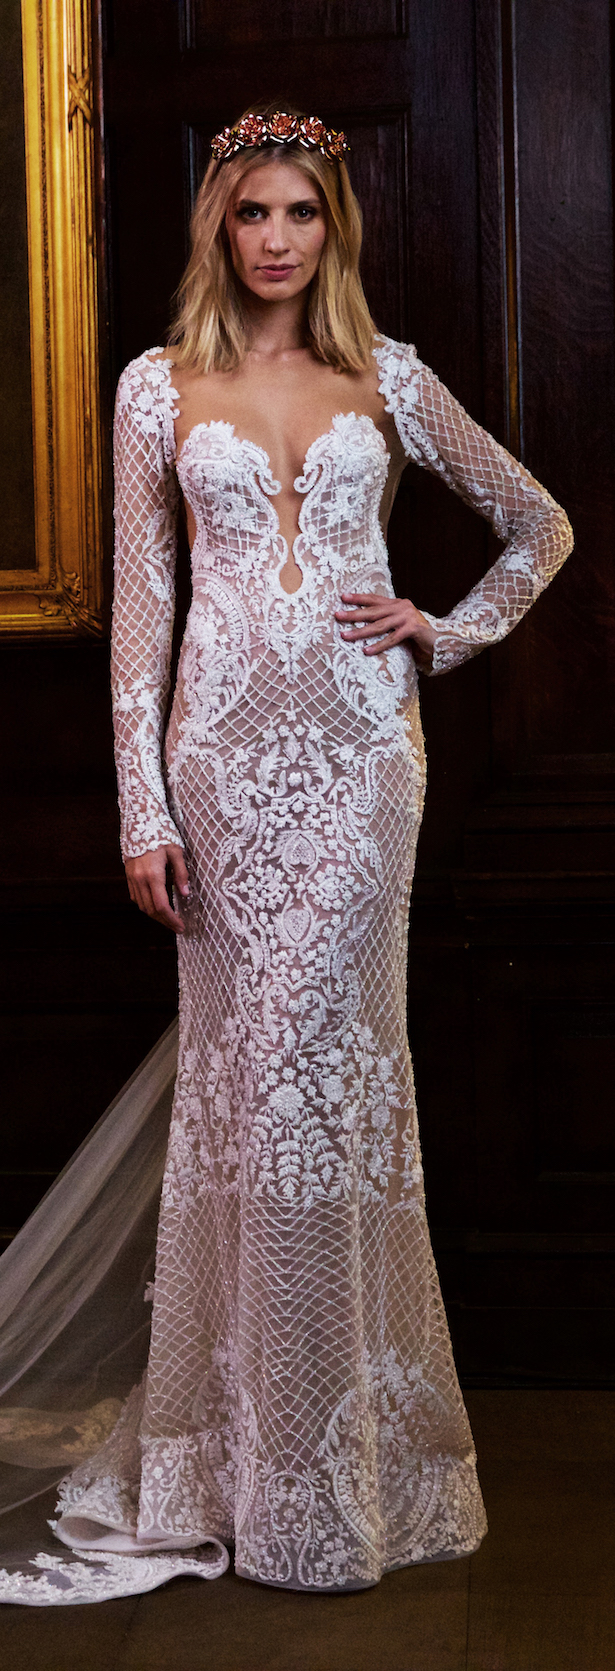 Berta Bridal Fall 2016 - NYBFW Presentation